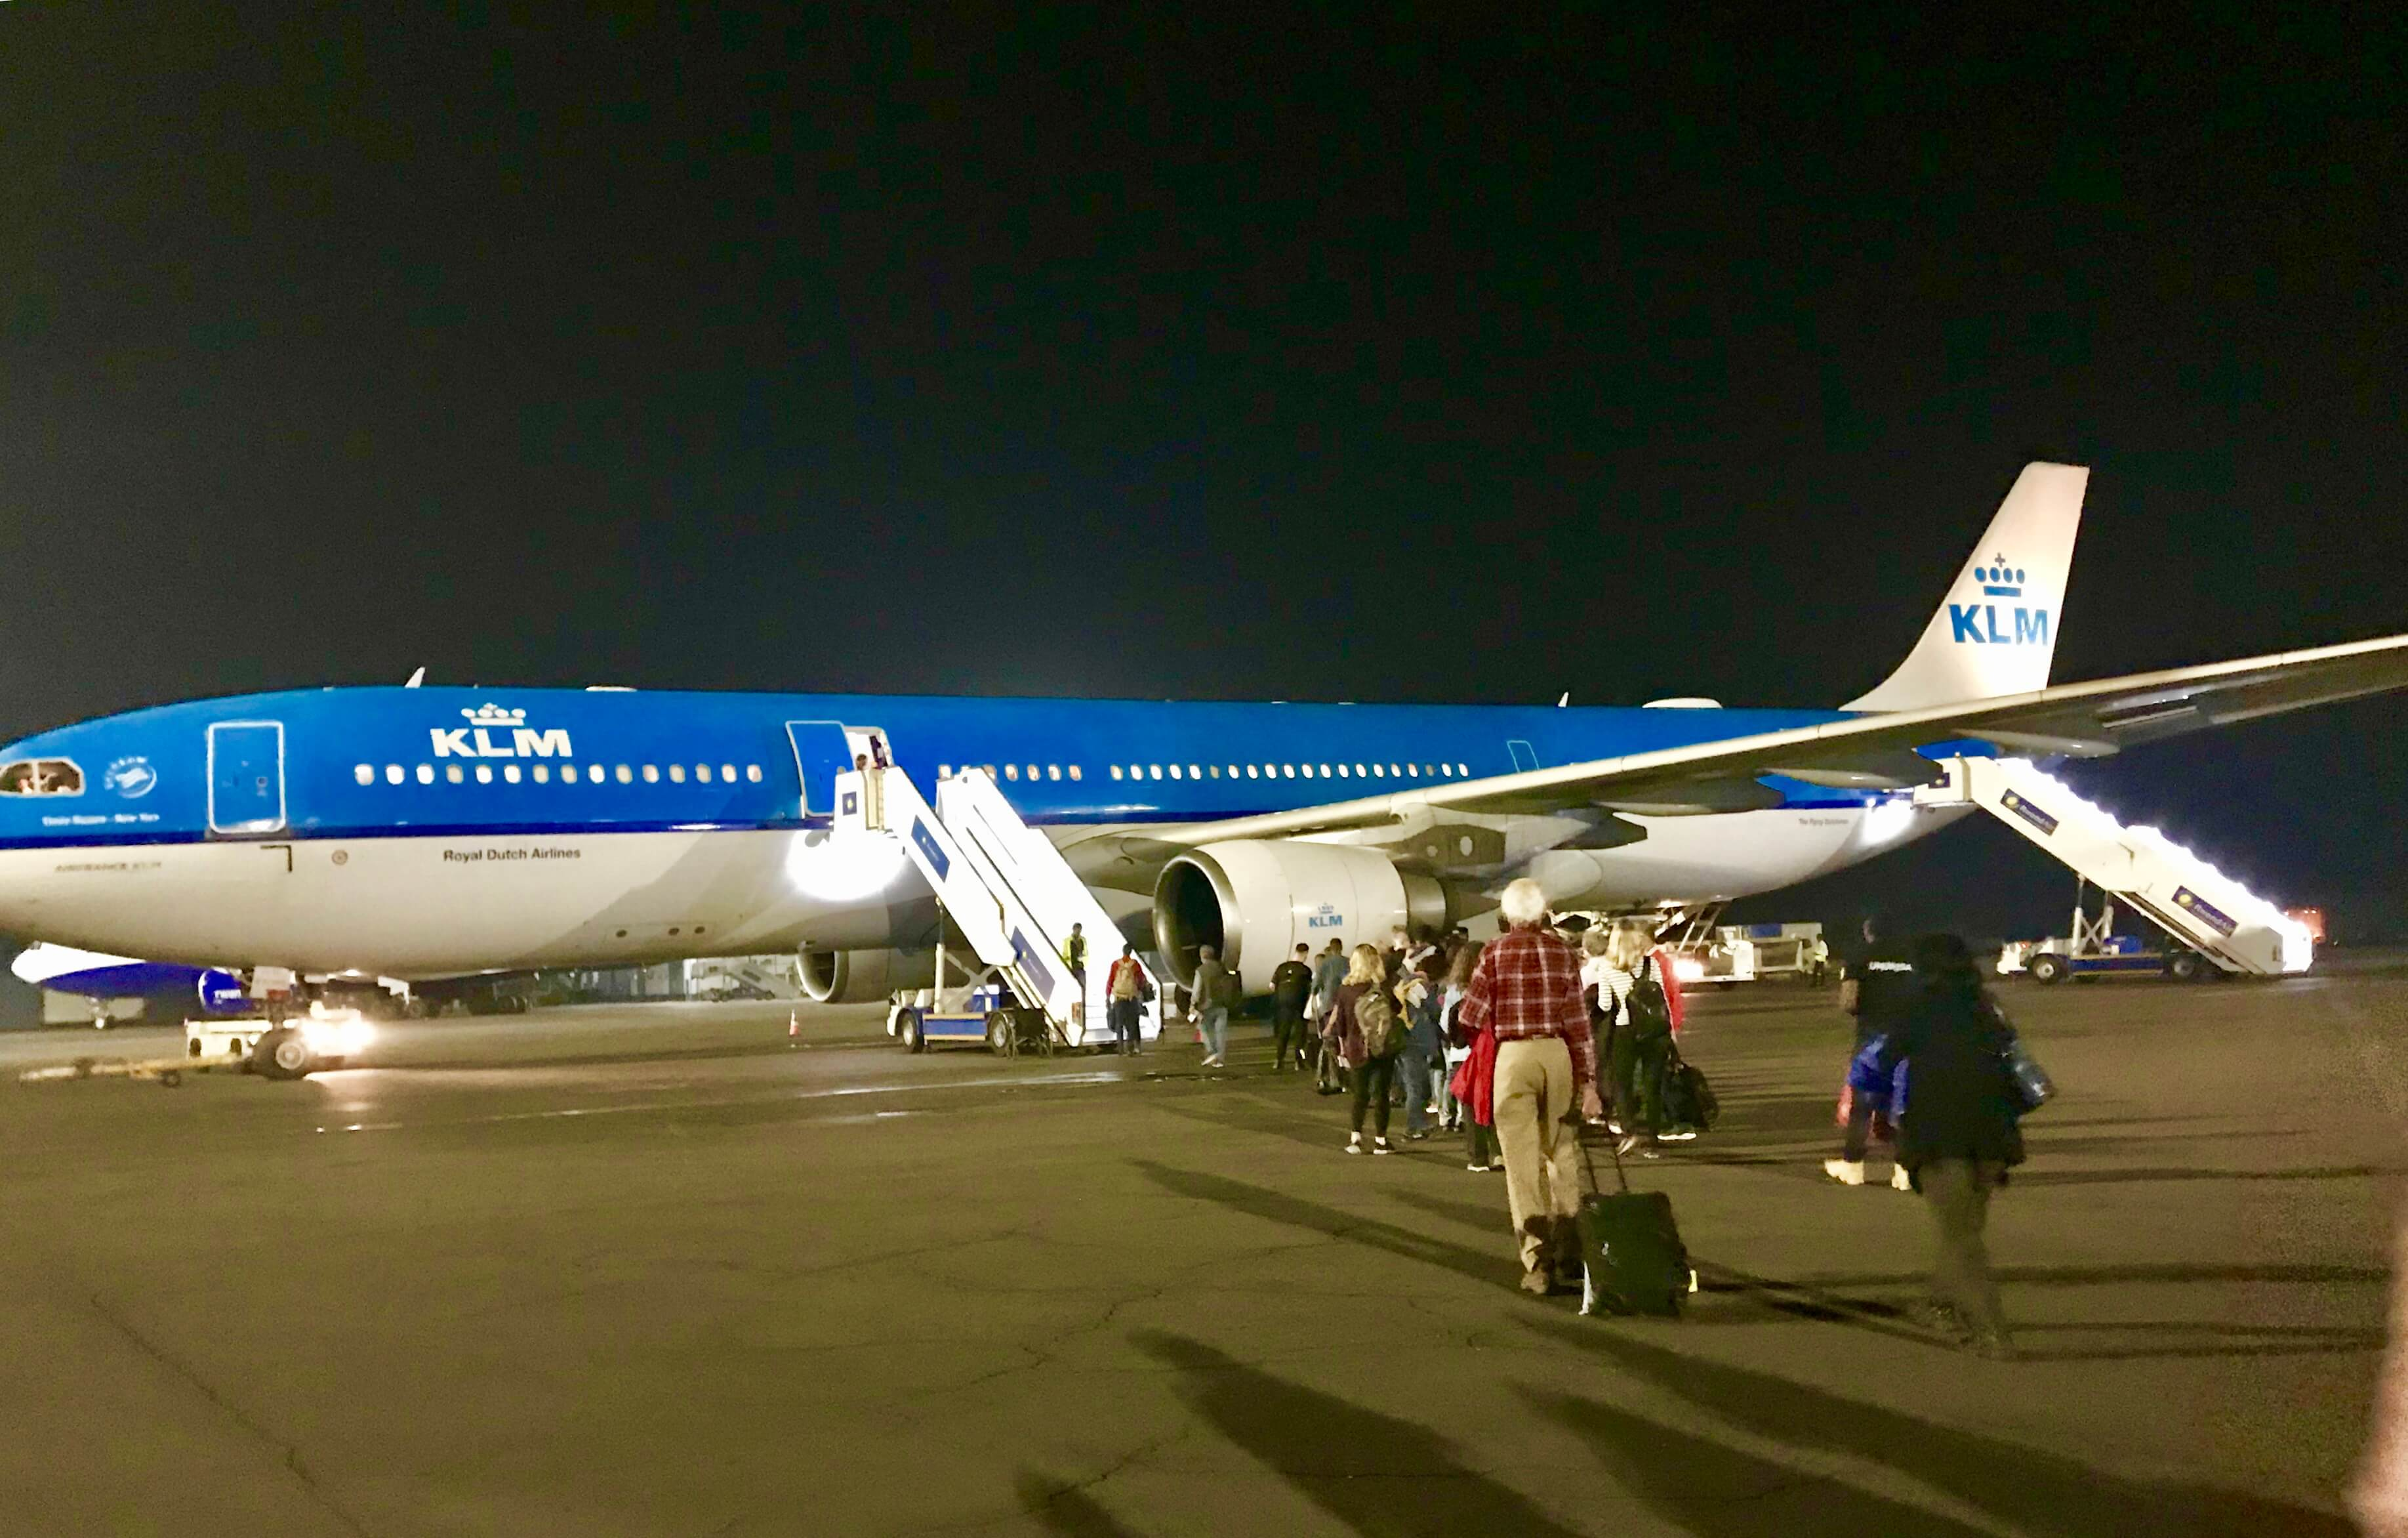 Boarding our KLM flight at Kigali International Airport